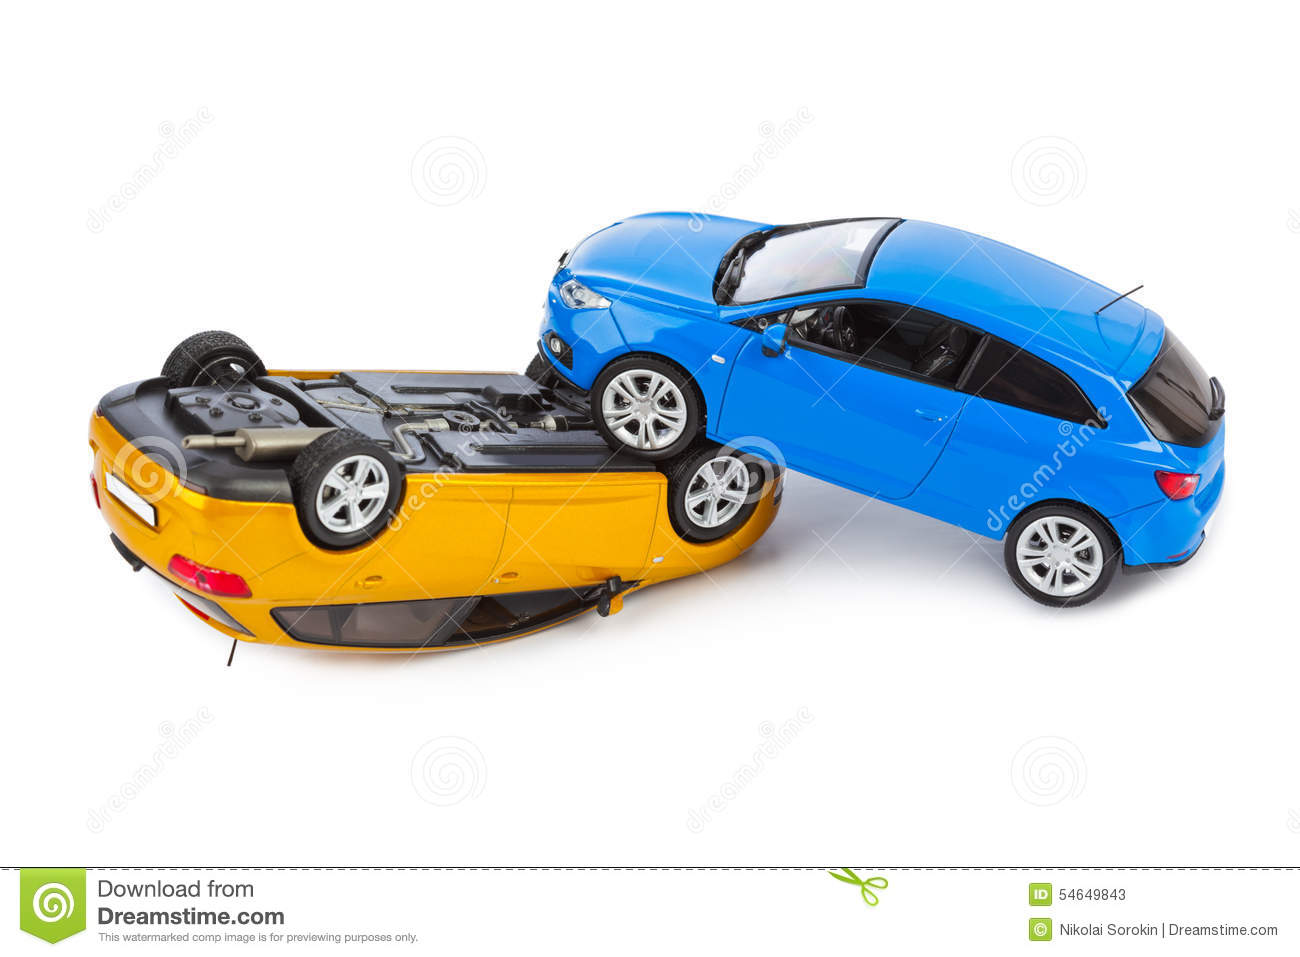 Hire Car Accident Insurance